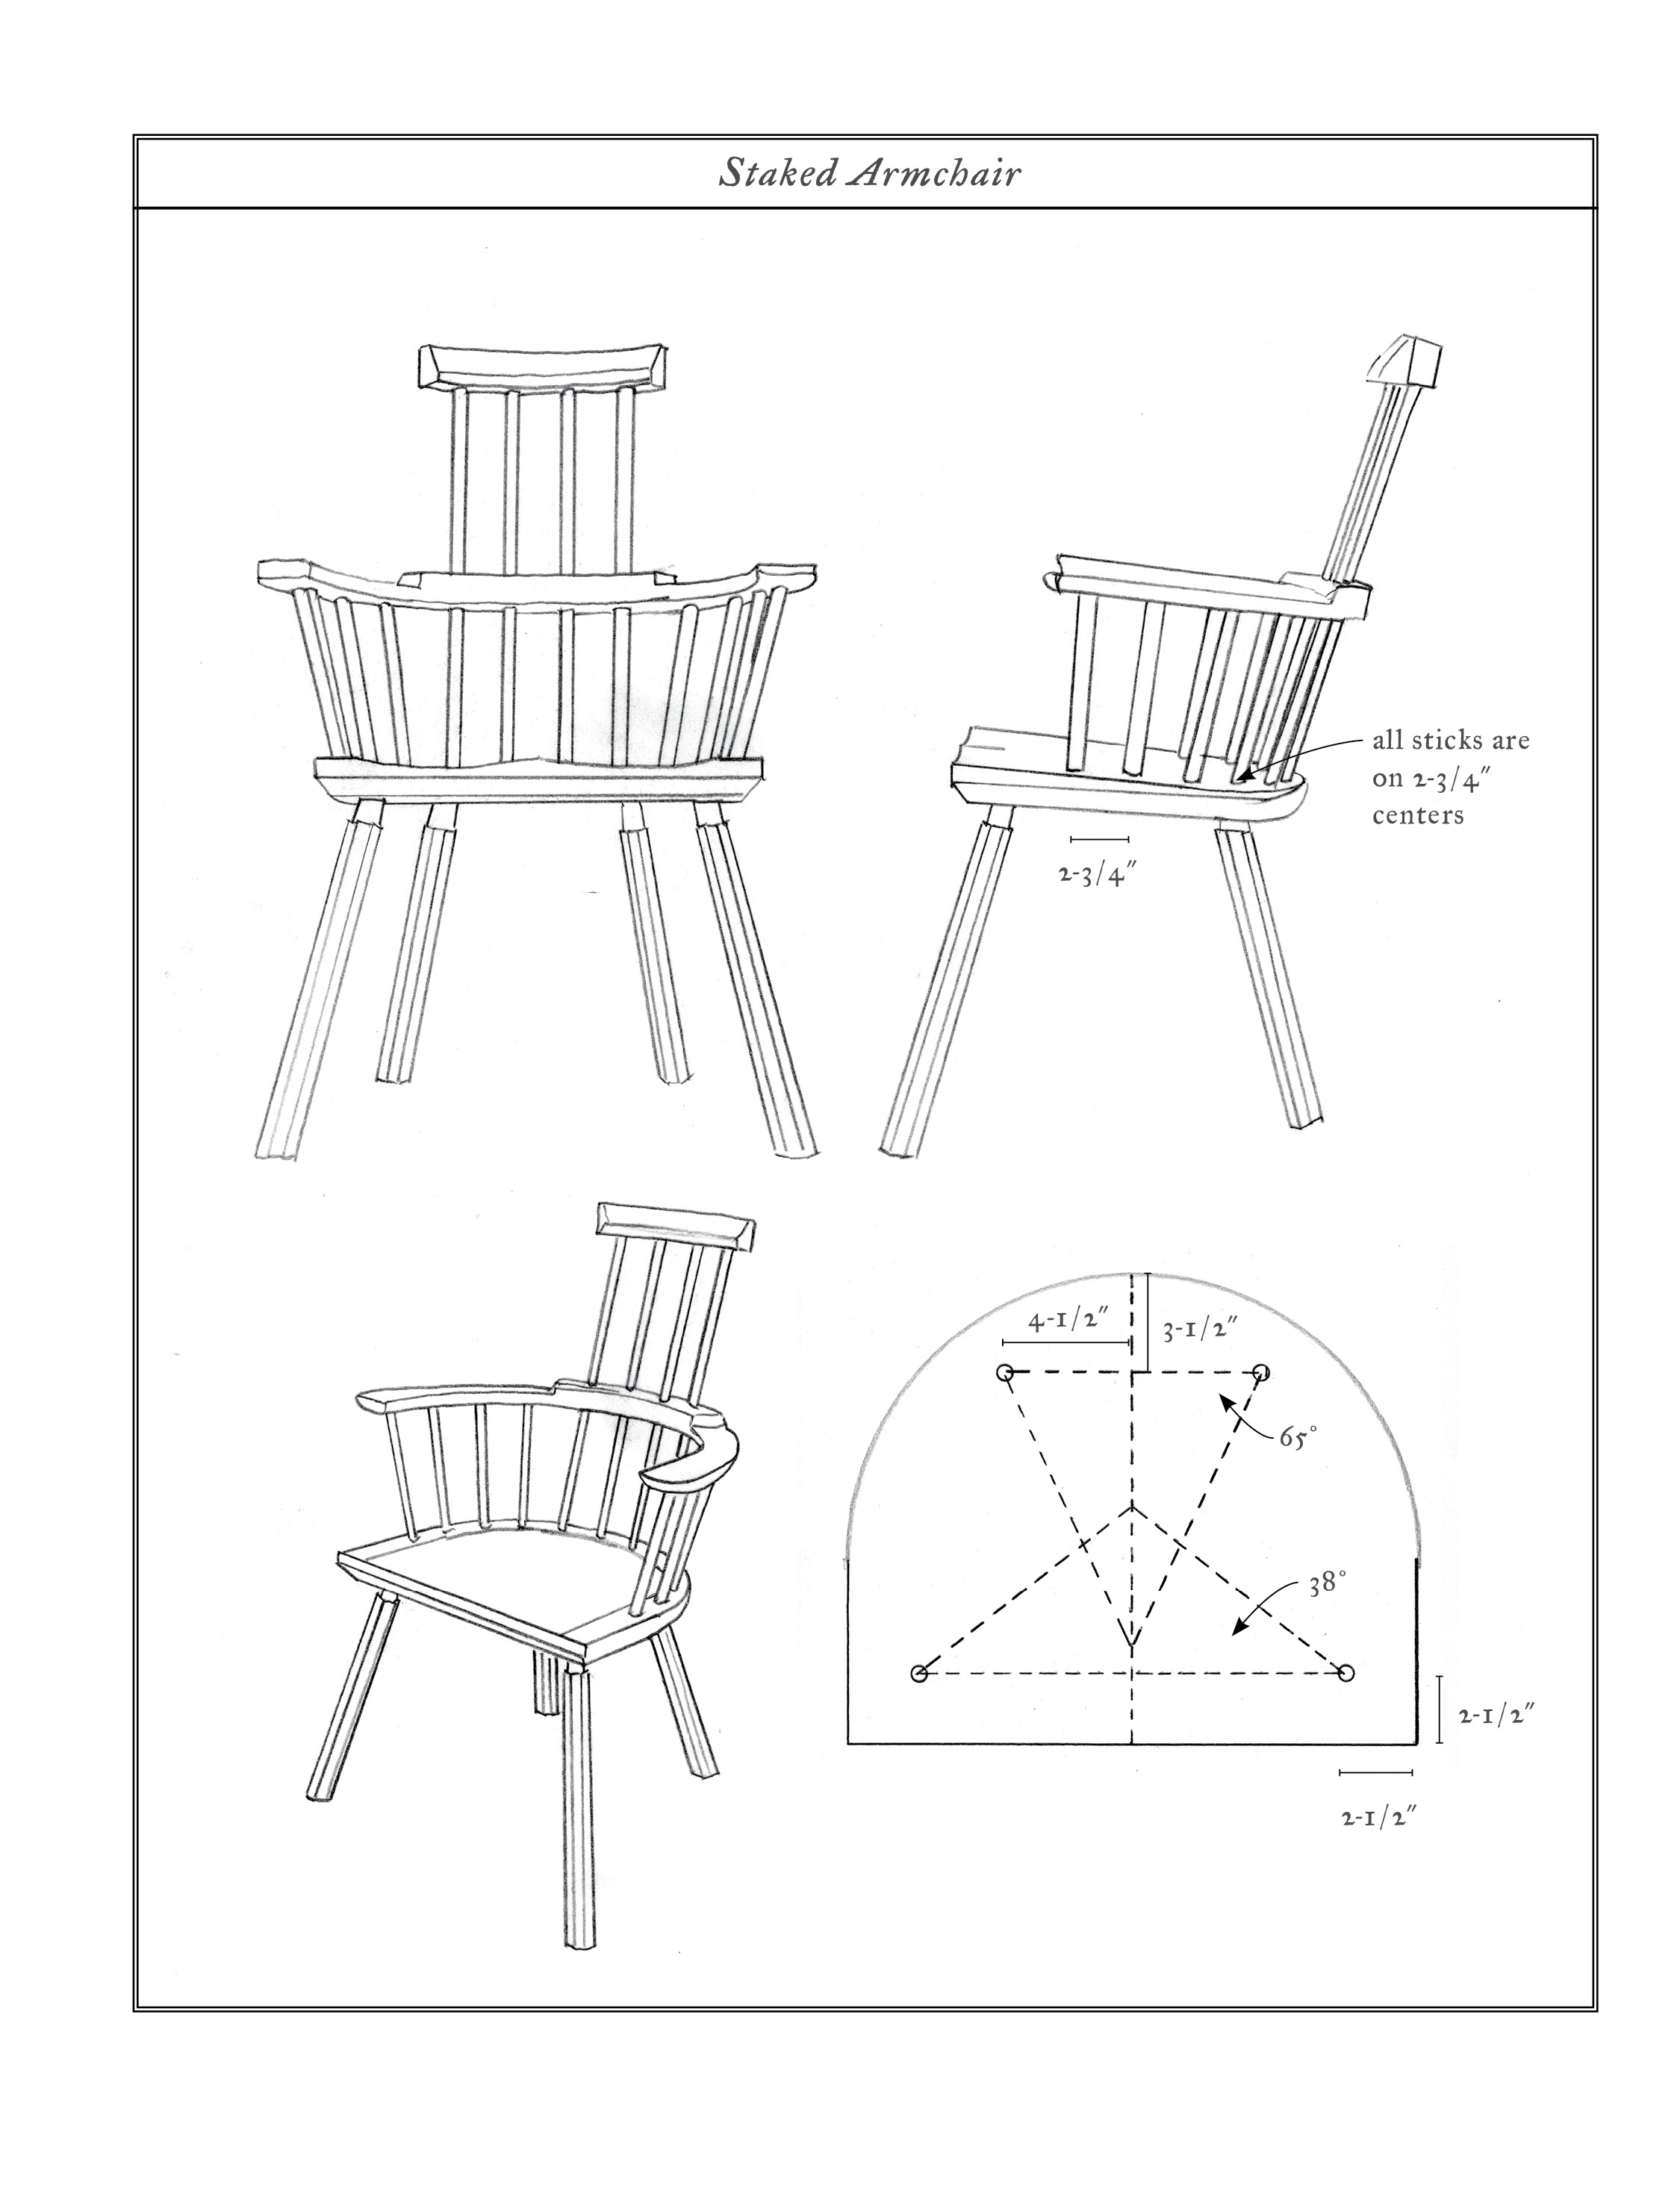 Some Specifications to the White Oak Stick Chair